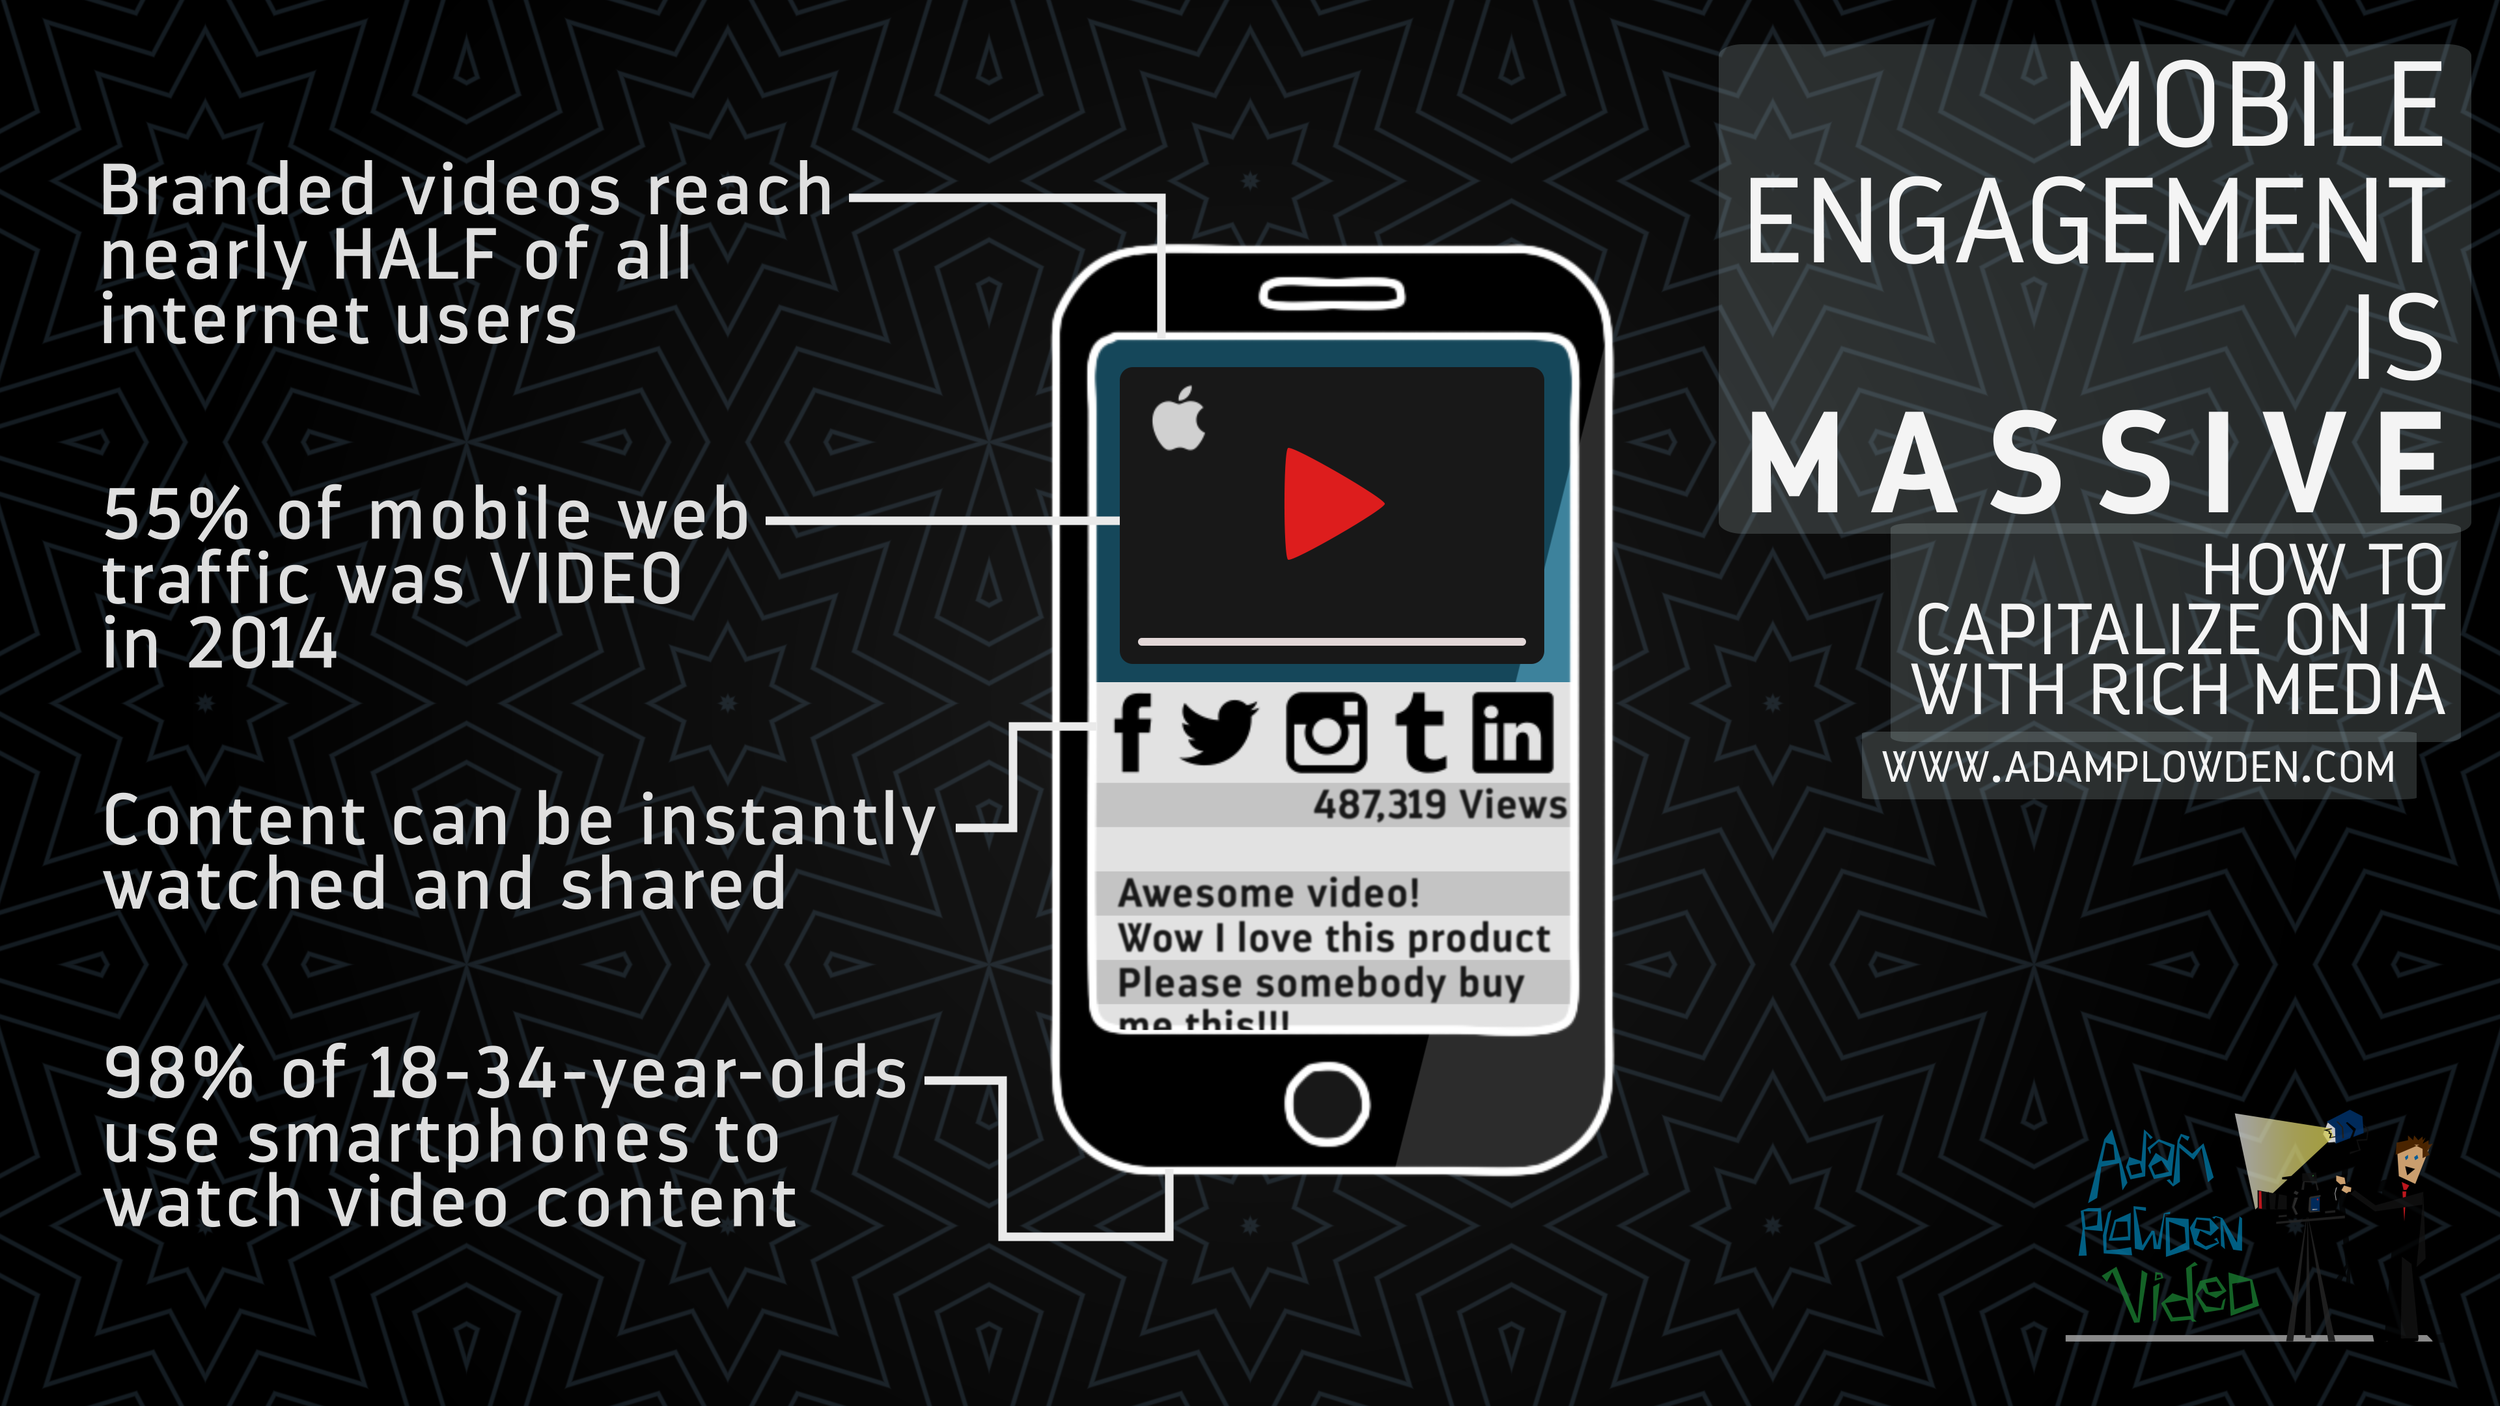 The stats speak for themselves. Video is now a powerful communication tool for connecting and reaching audiences on a global, 24/7 platform. Tell your story with APVideo.